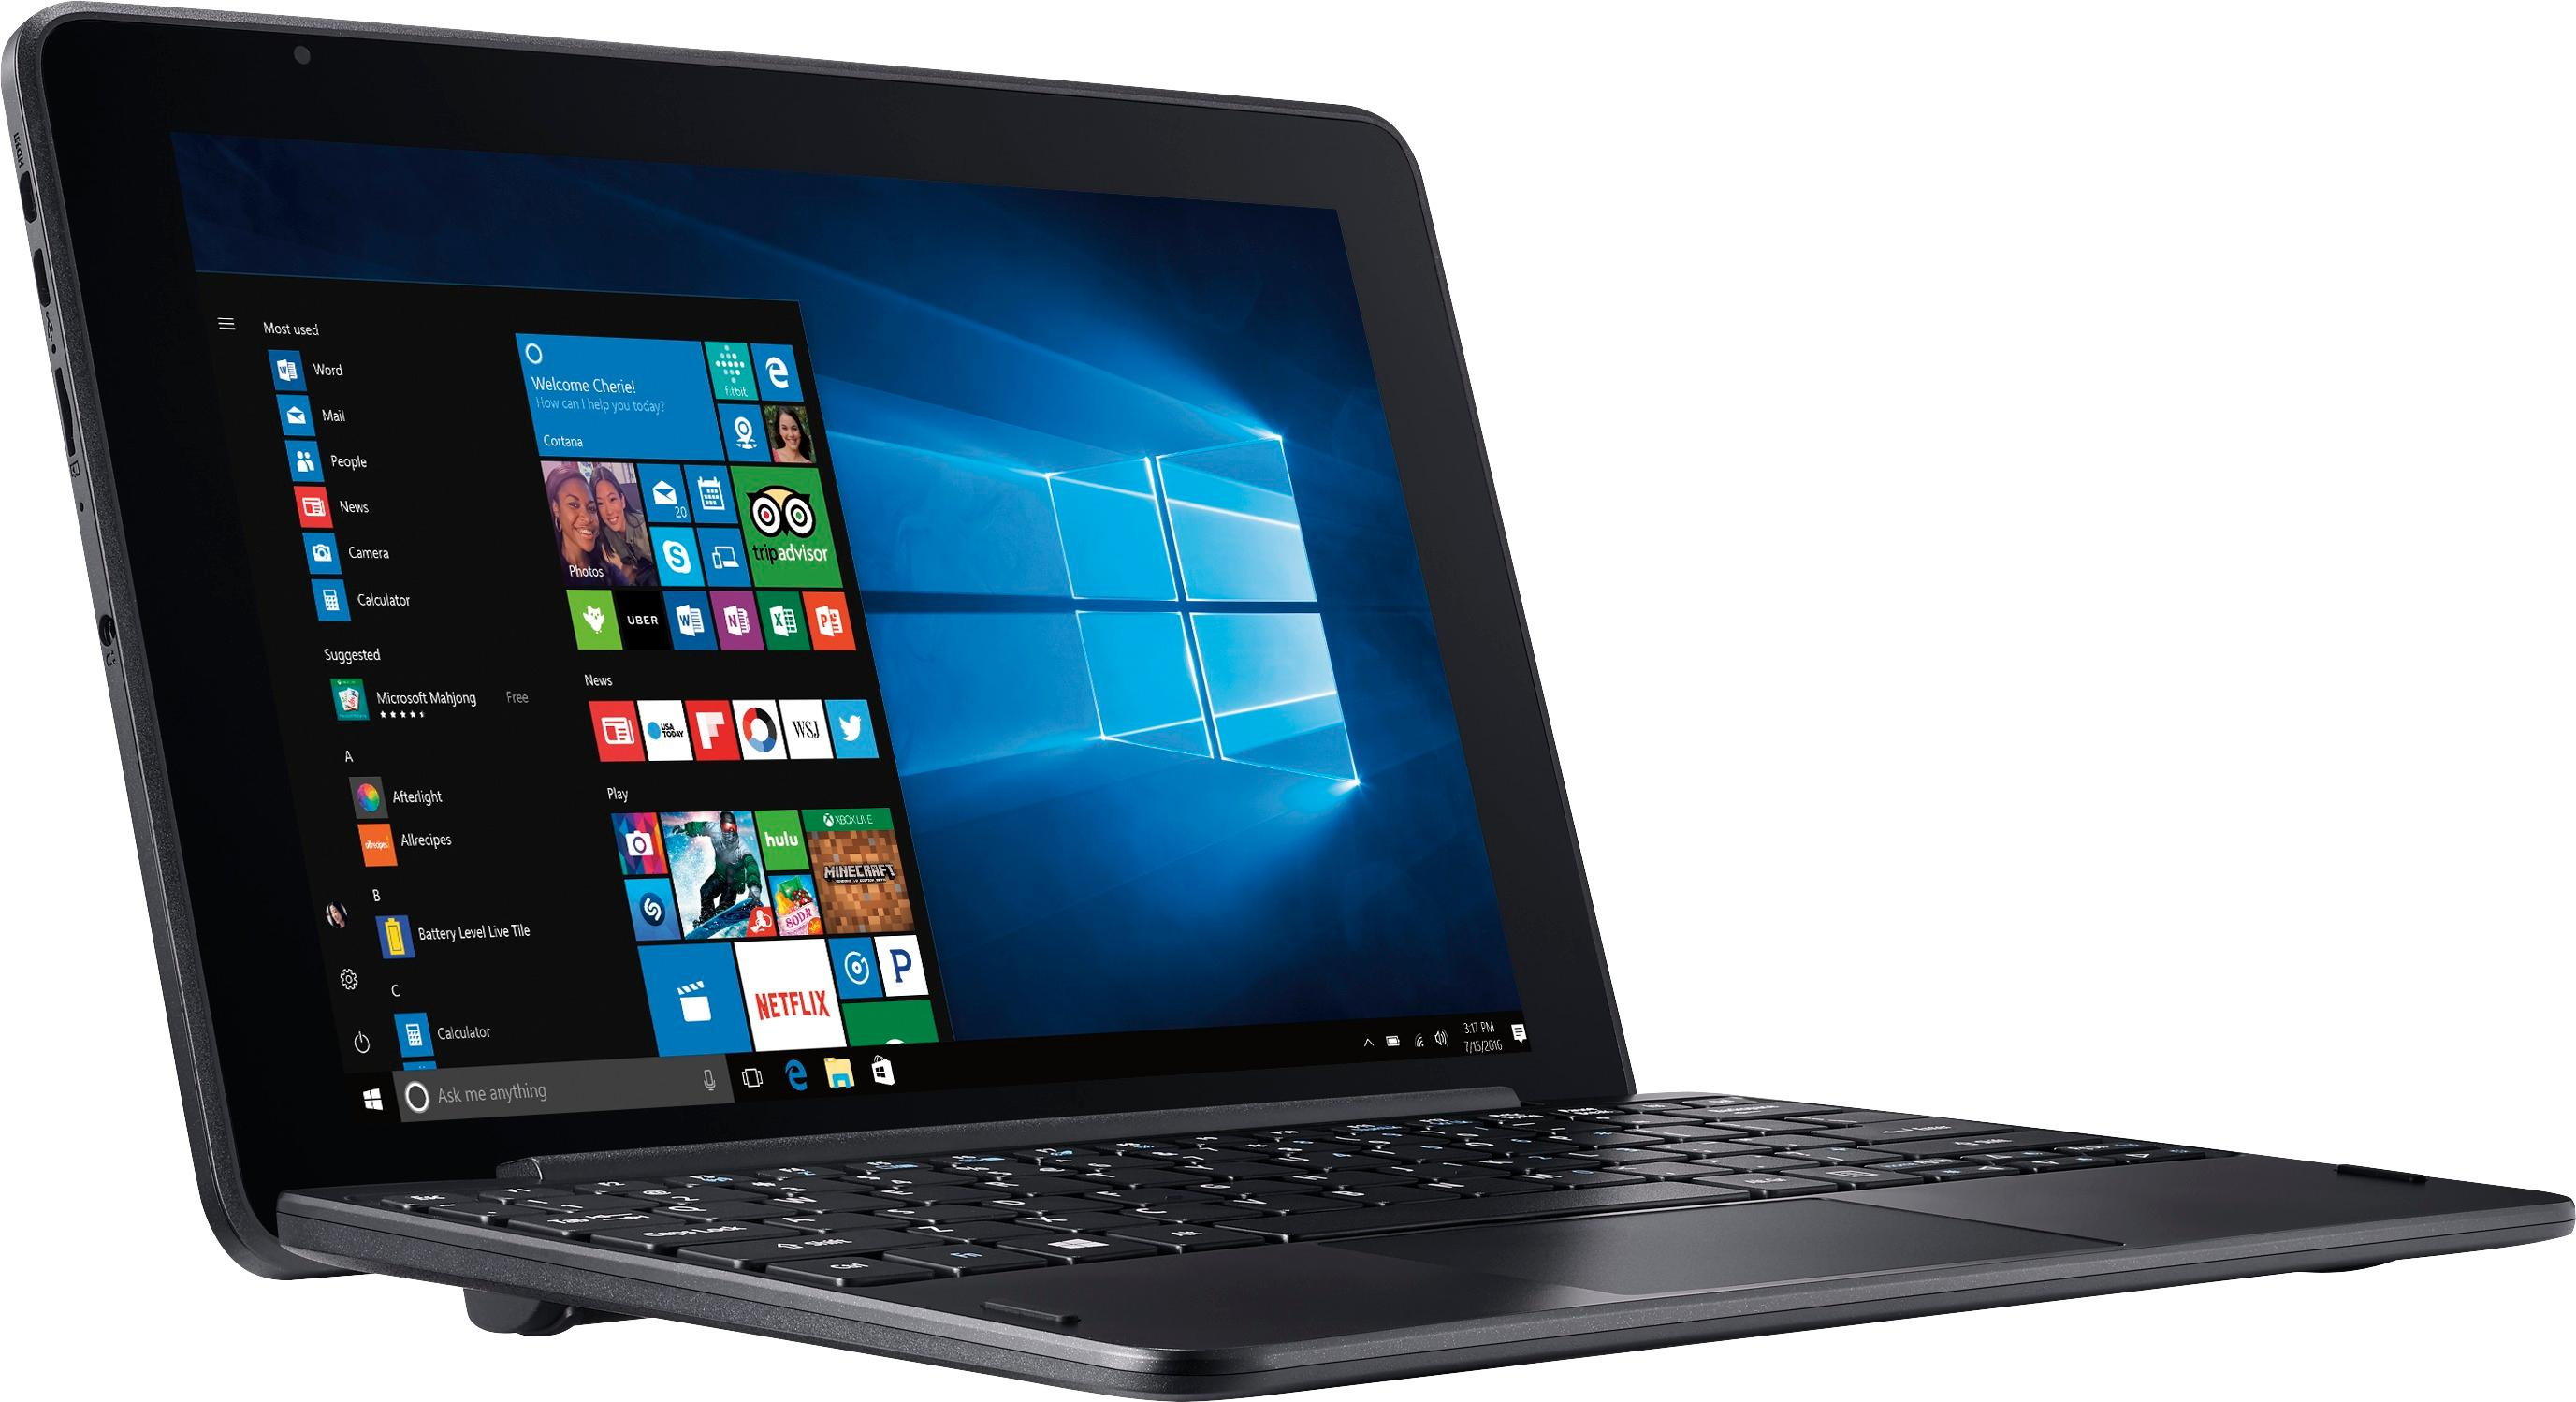 Best Buy Acer One 10 101 Tablet 32GB With Keyboard Shale Black S1003 114M